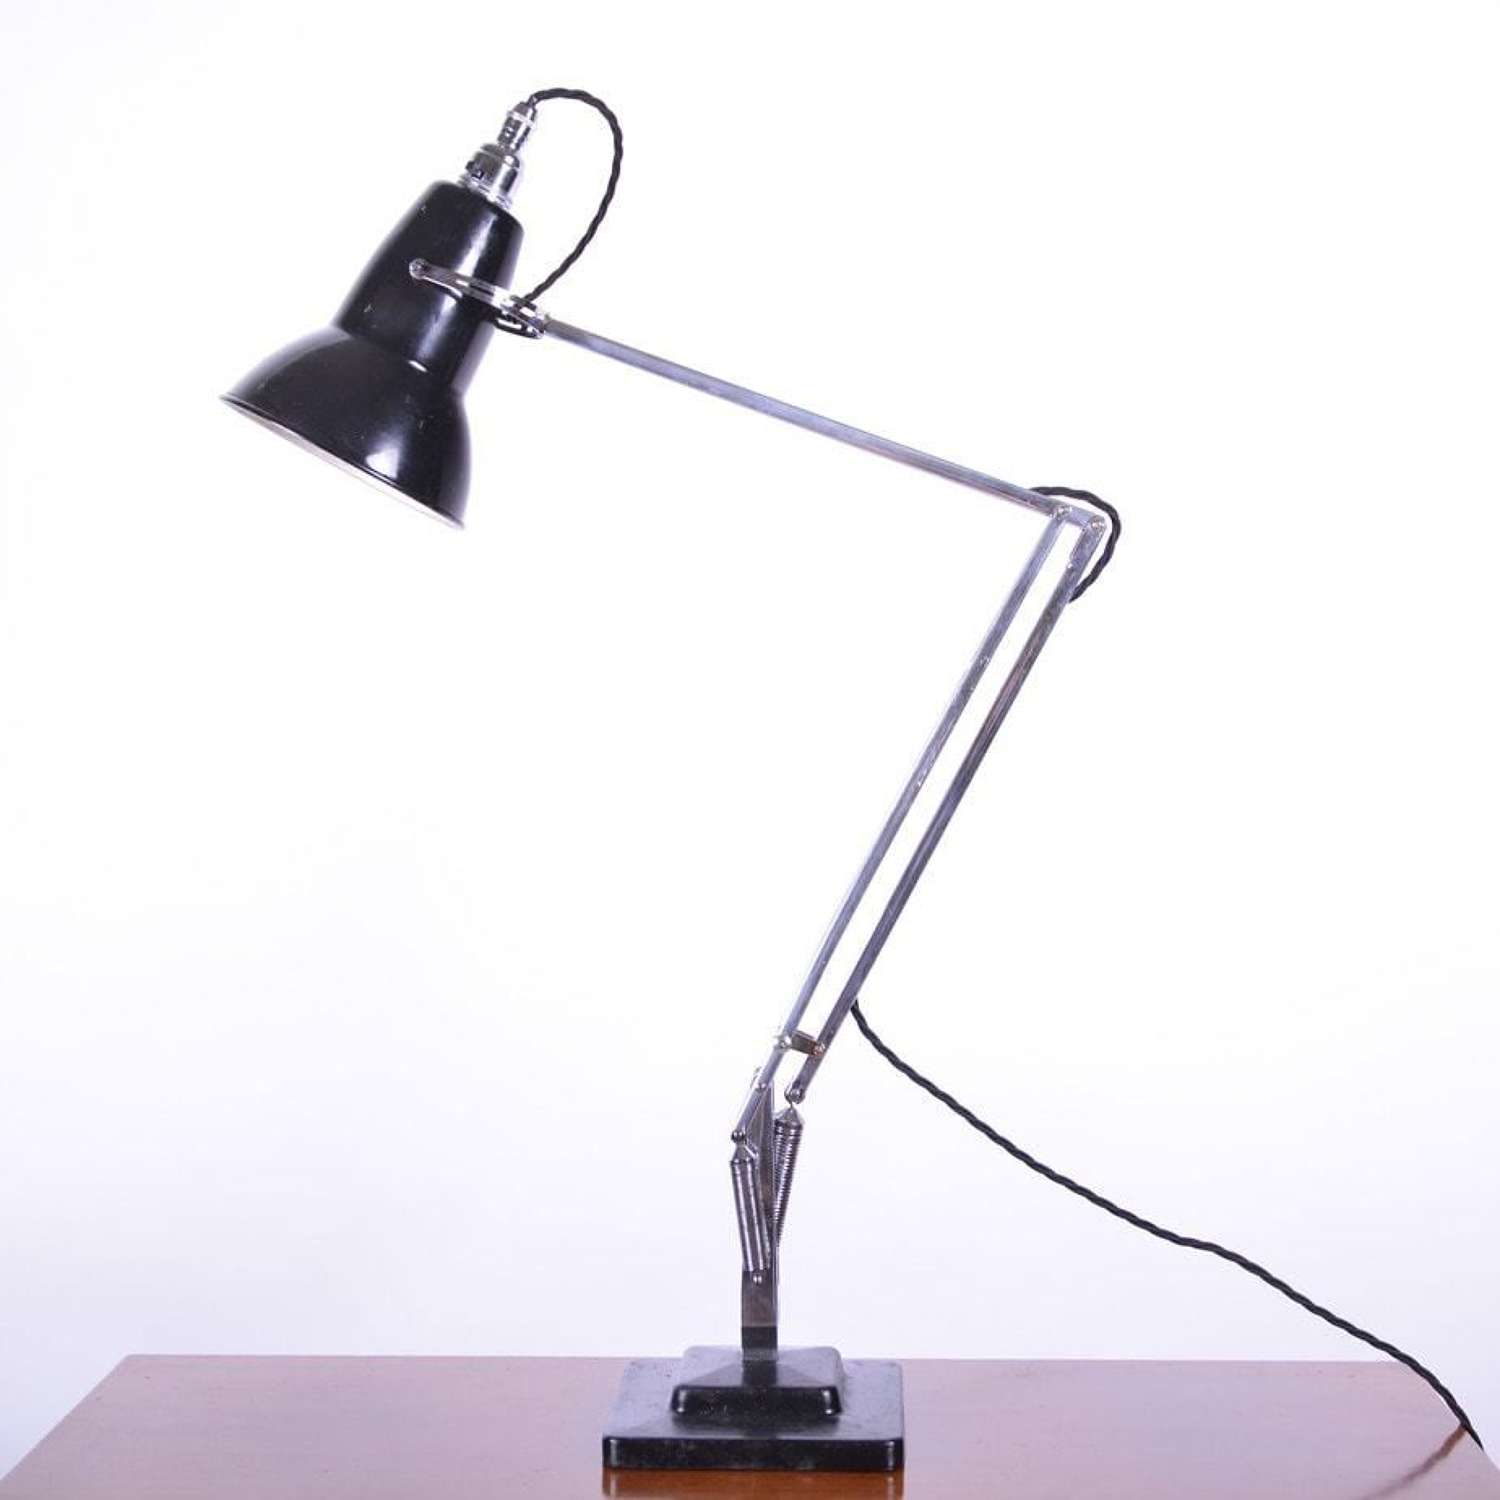 The 1227 lamp, by Anglepoise